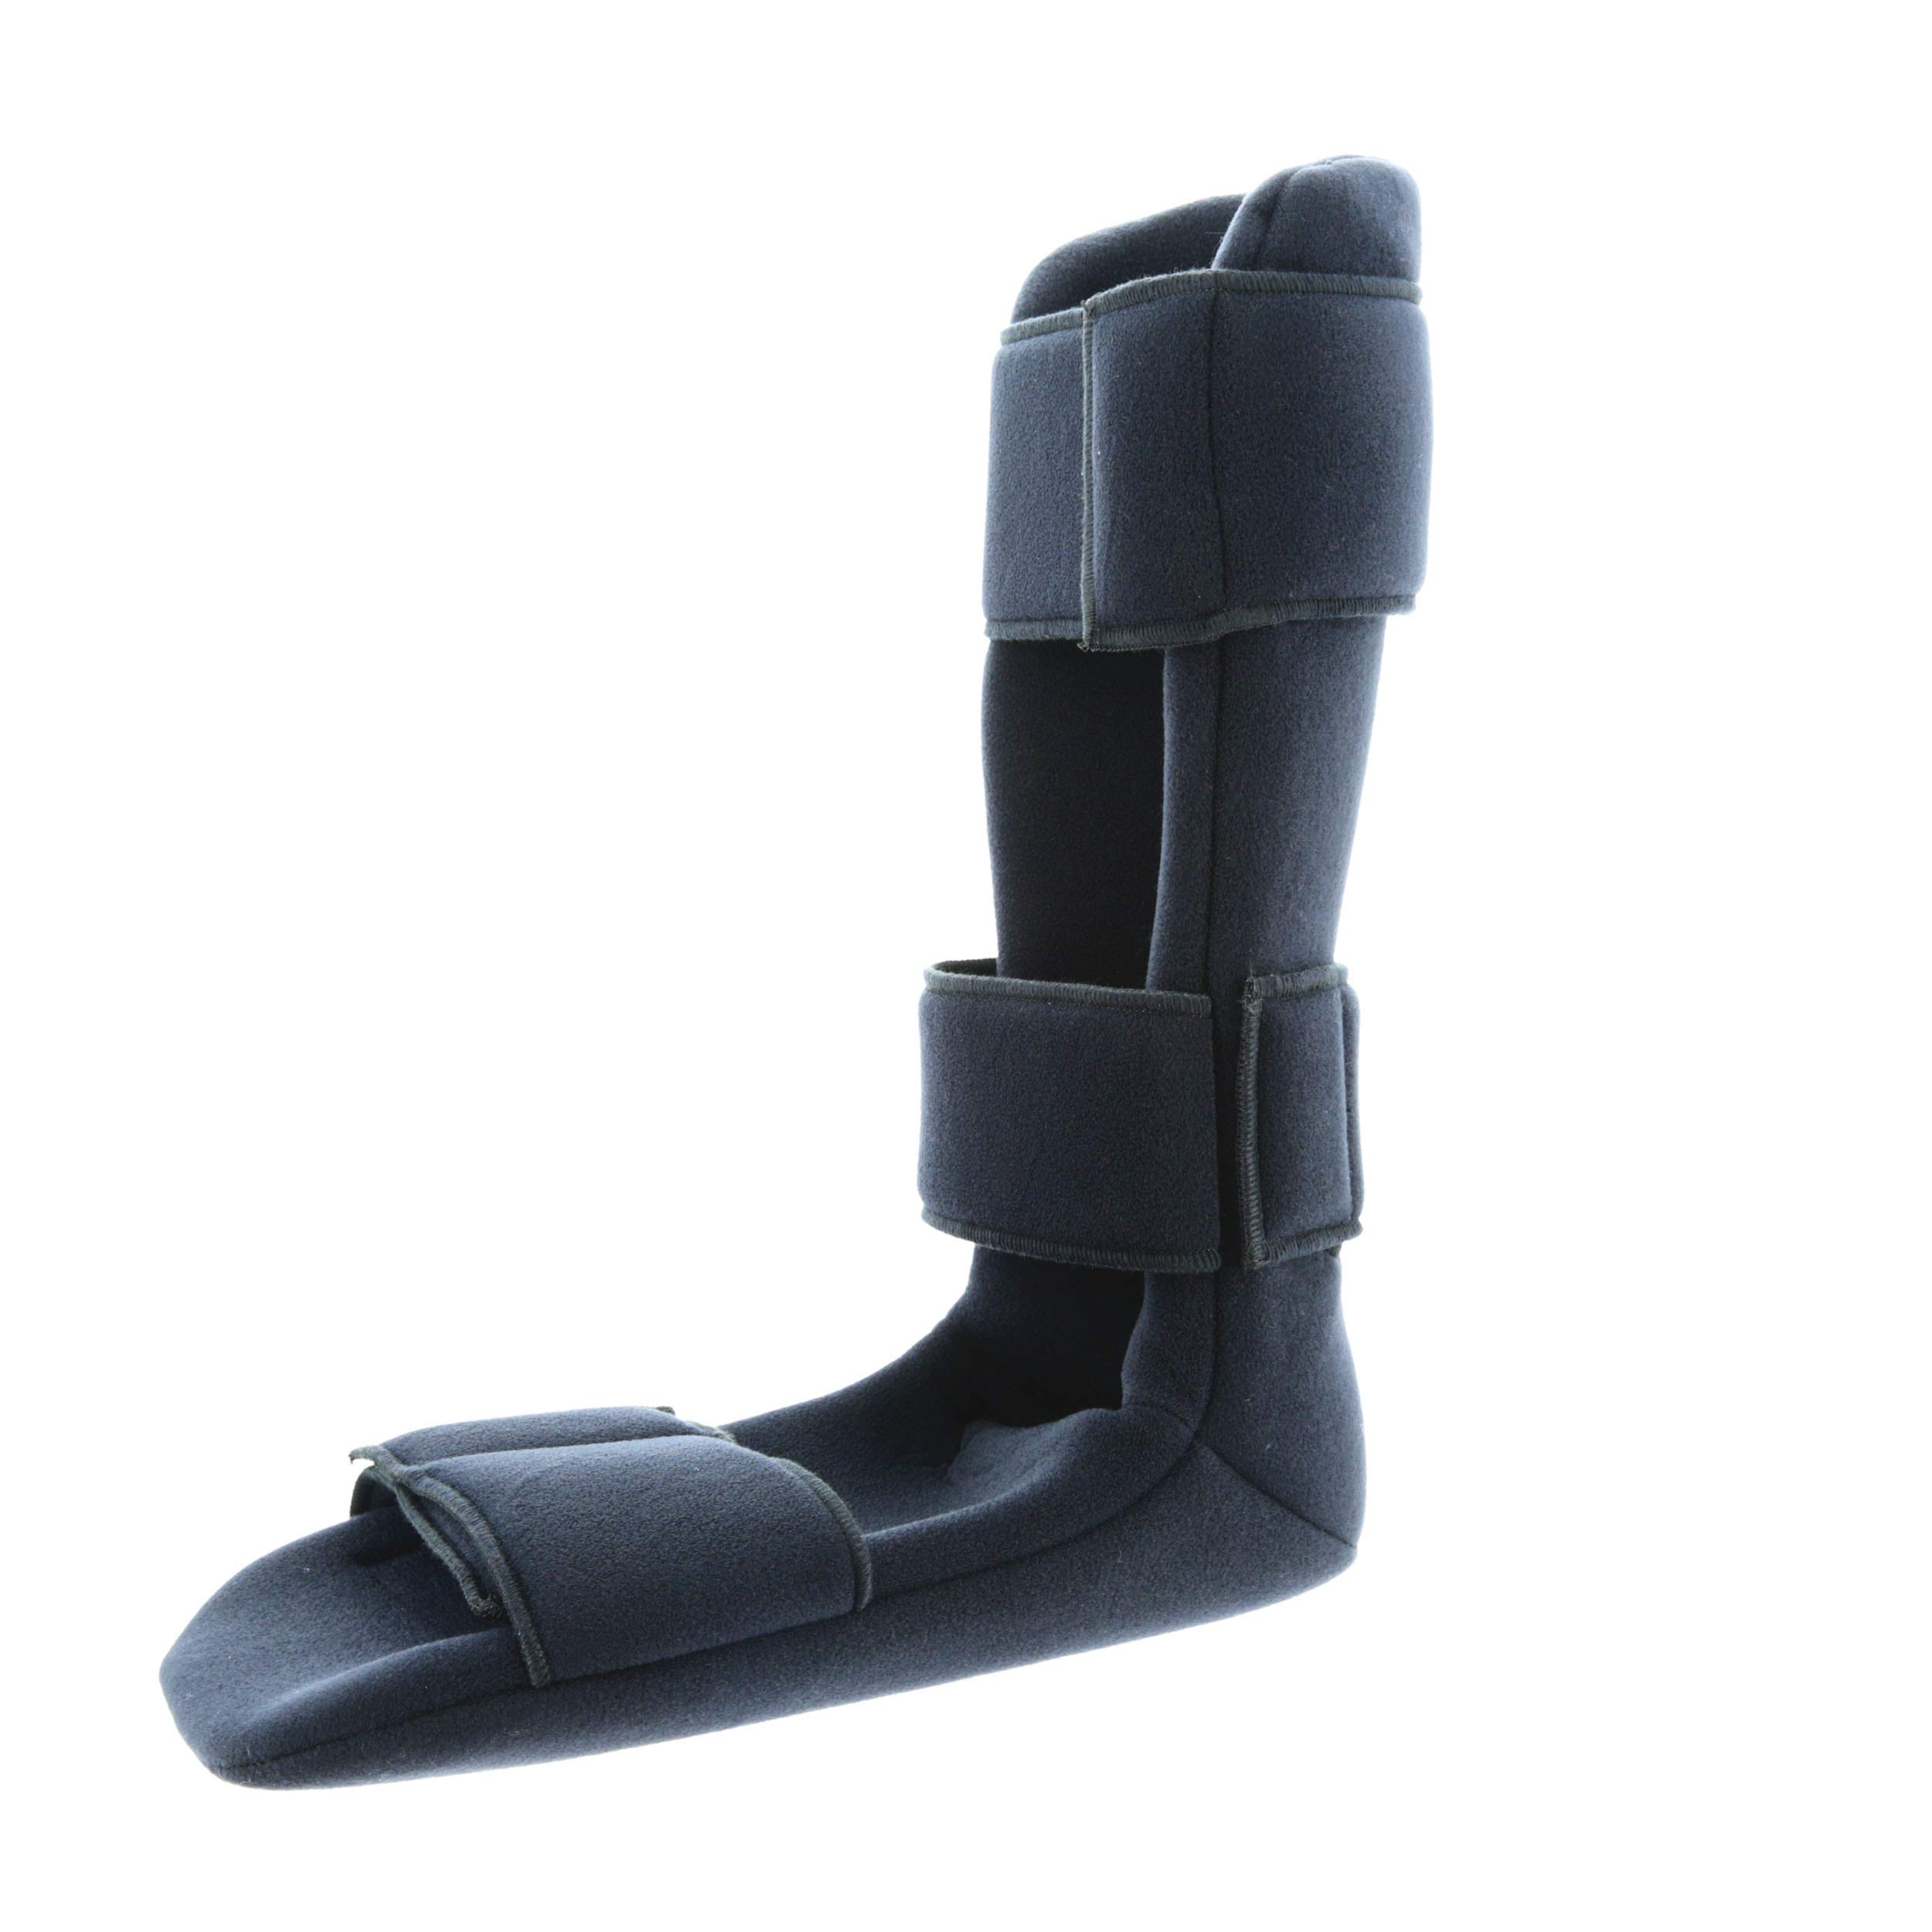 Swede-O Deluxe Night Splint - Small